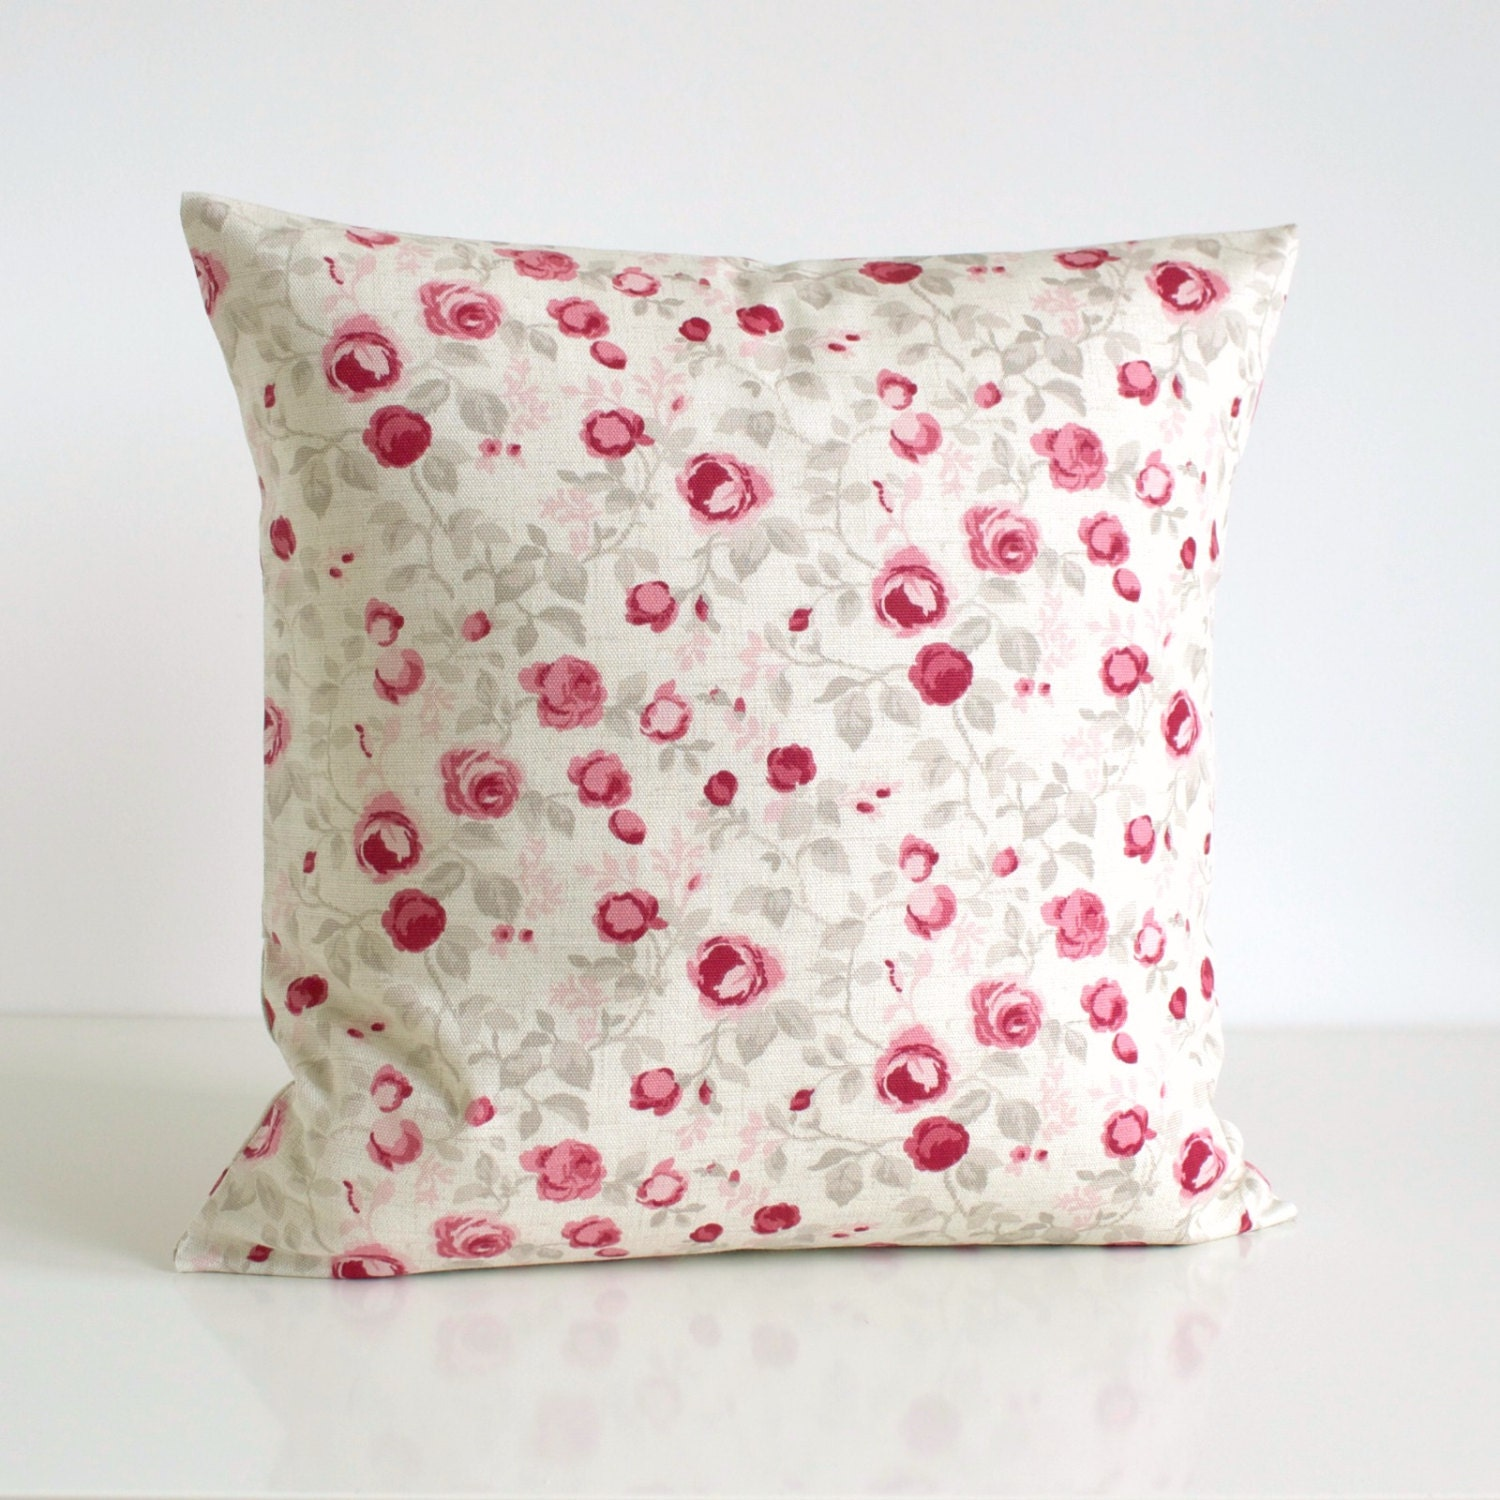 Shabby Chic Toss Pillows : Decorative Pillow Cover Shabby Chic Cushion Cover by CoupleHome